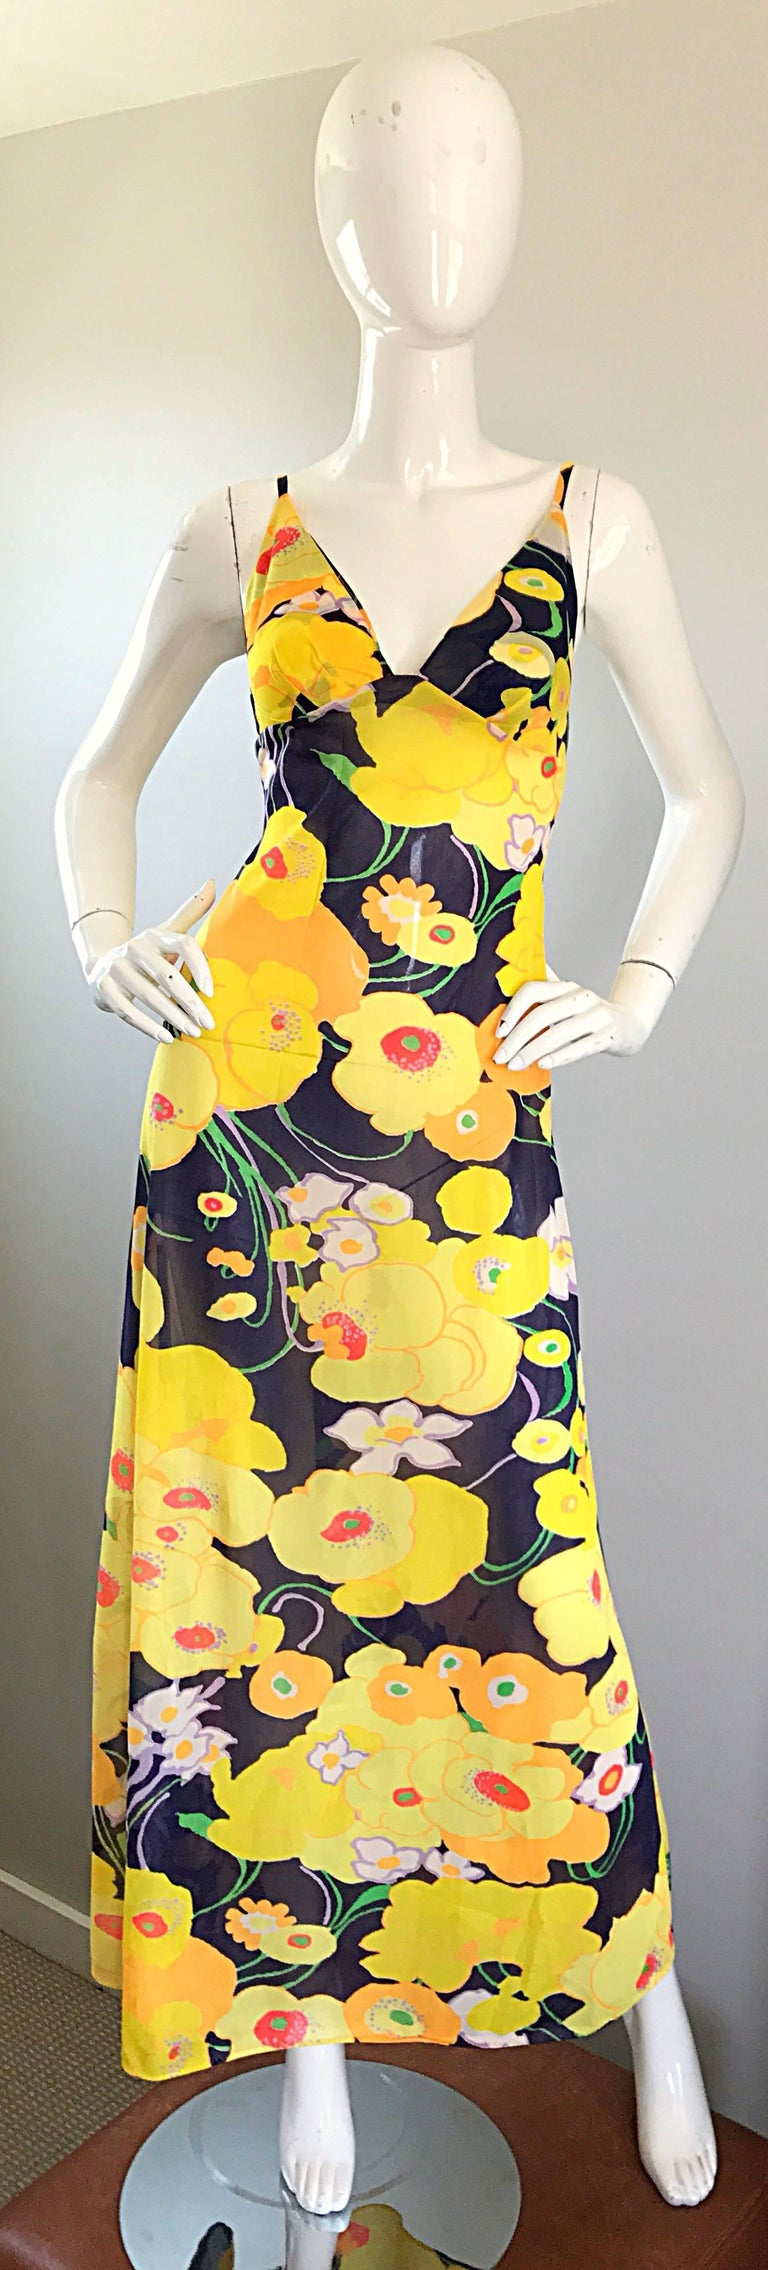 Amazing 1970s CHRISTIAN DIOR / MISS DIOR vibrant colored flower maxi dress and jacket! Features brightly colored flower prints in yellow, navy blue, red, white, lavender purple, green and orange throughout. Maxi dress features a fitted bodice with a